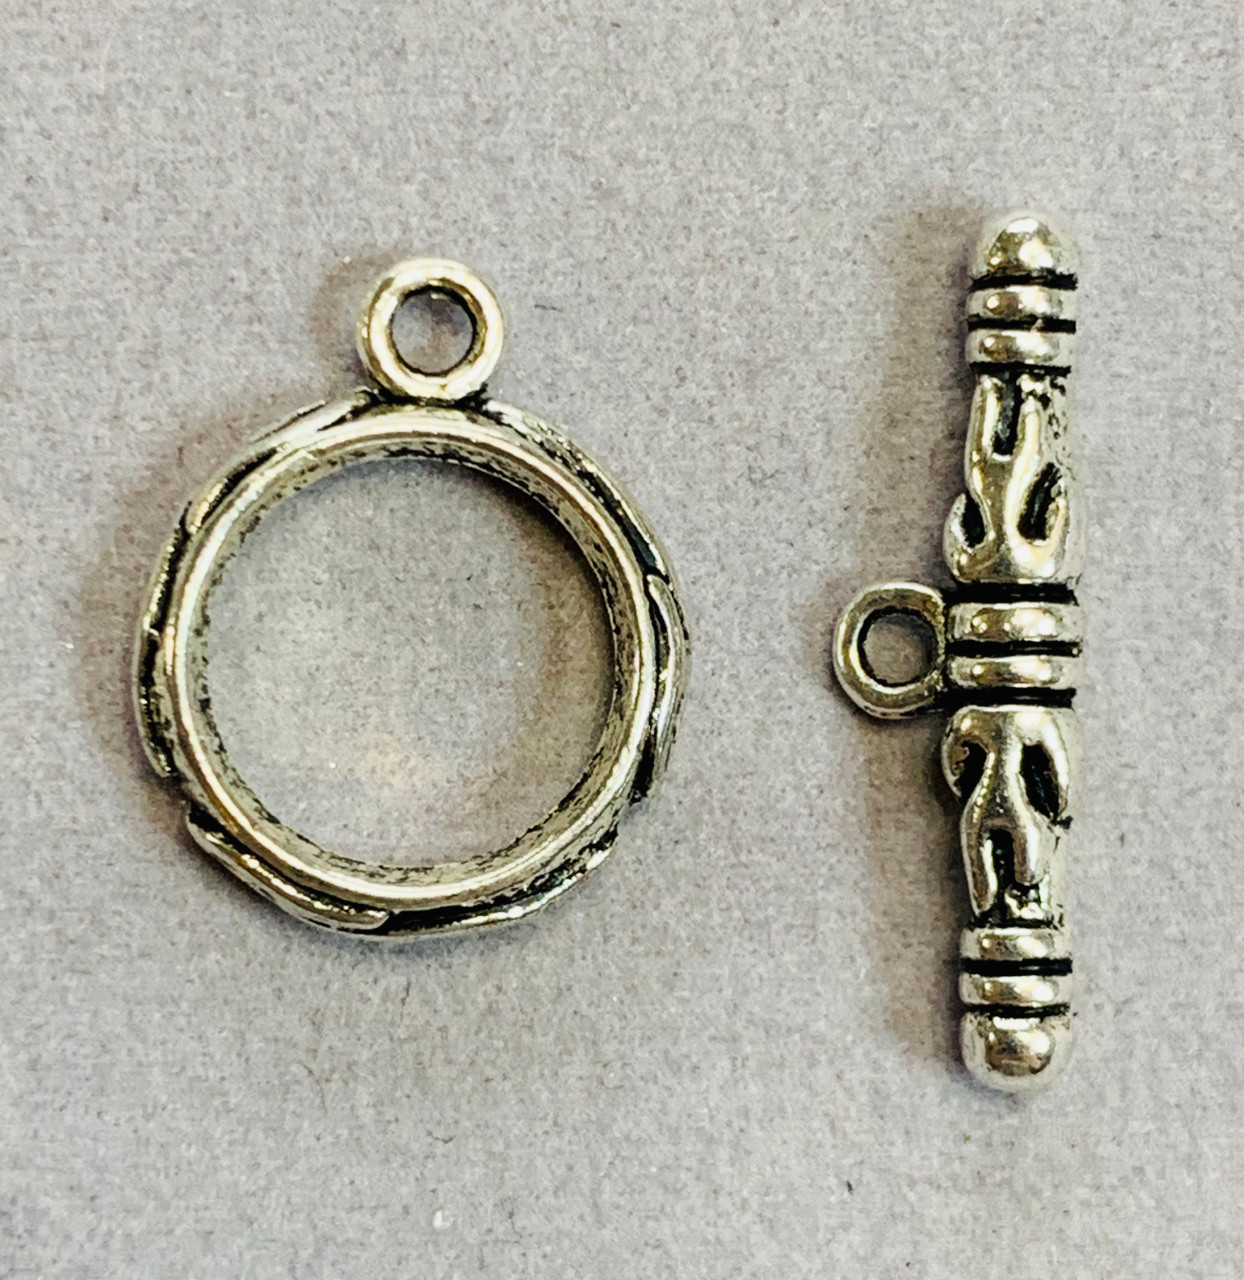 14x17mm Lead Free Pewter Bali Toggle (2 sets)